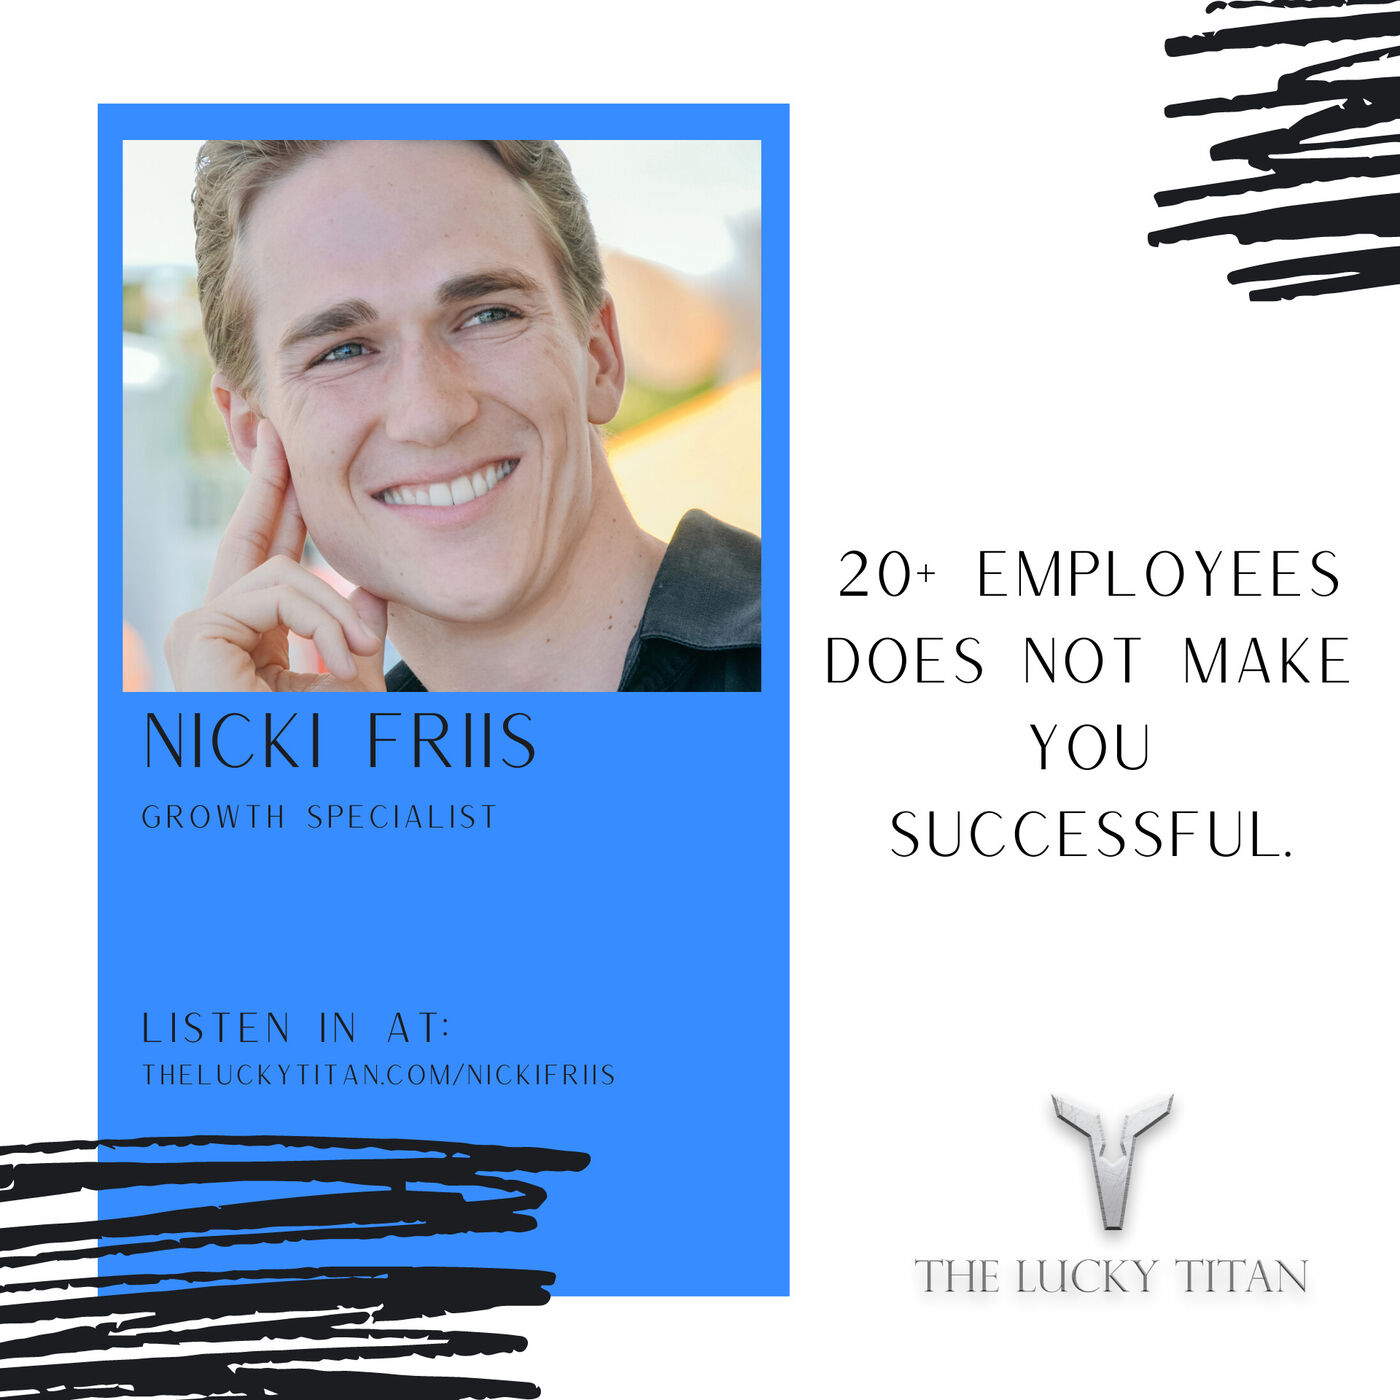 20+ employees does not make you successful. With Nicki Friis